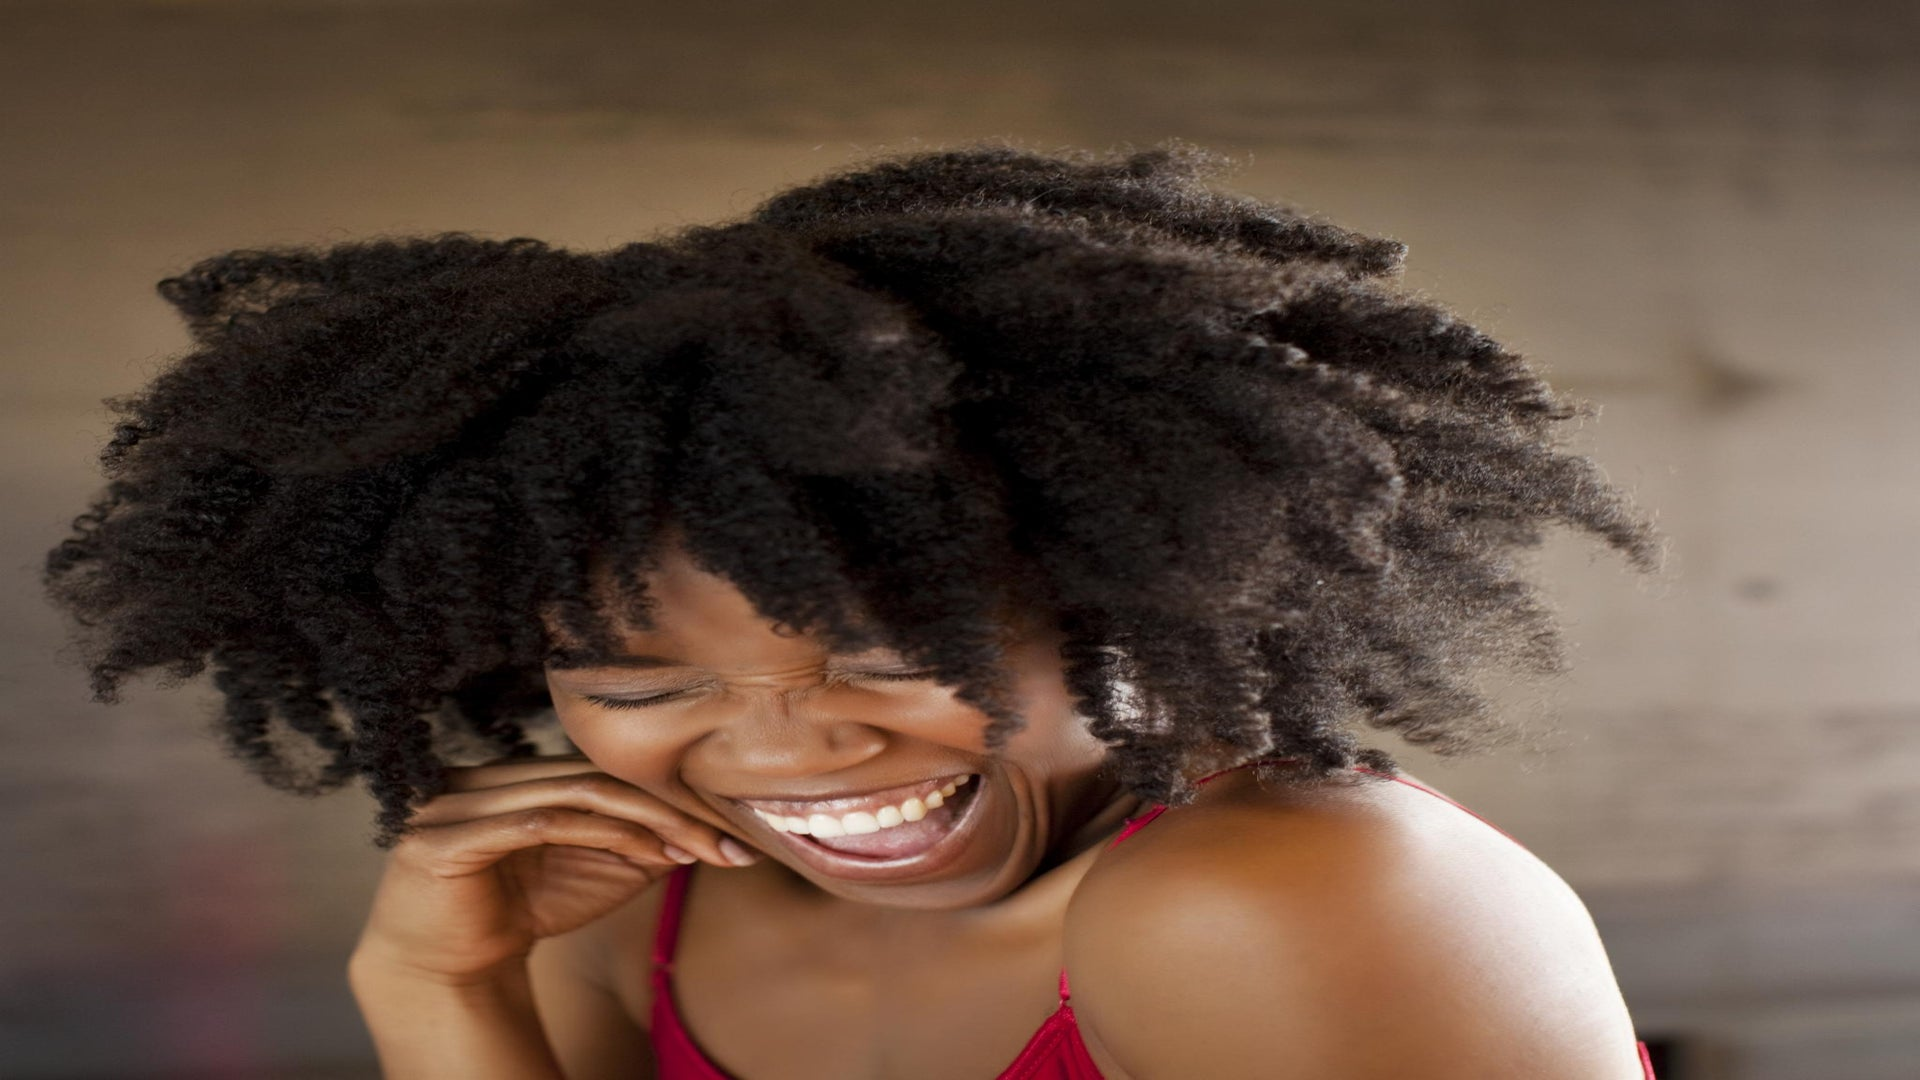 Share Your Hair Journey With Us!